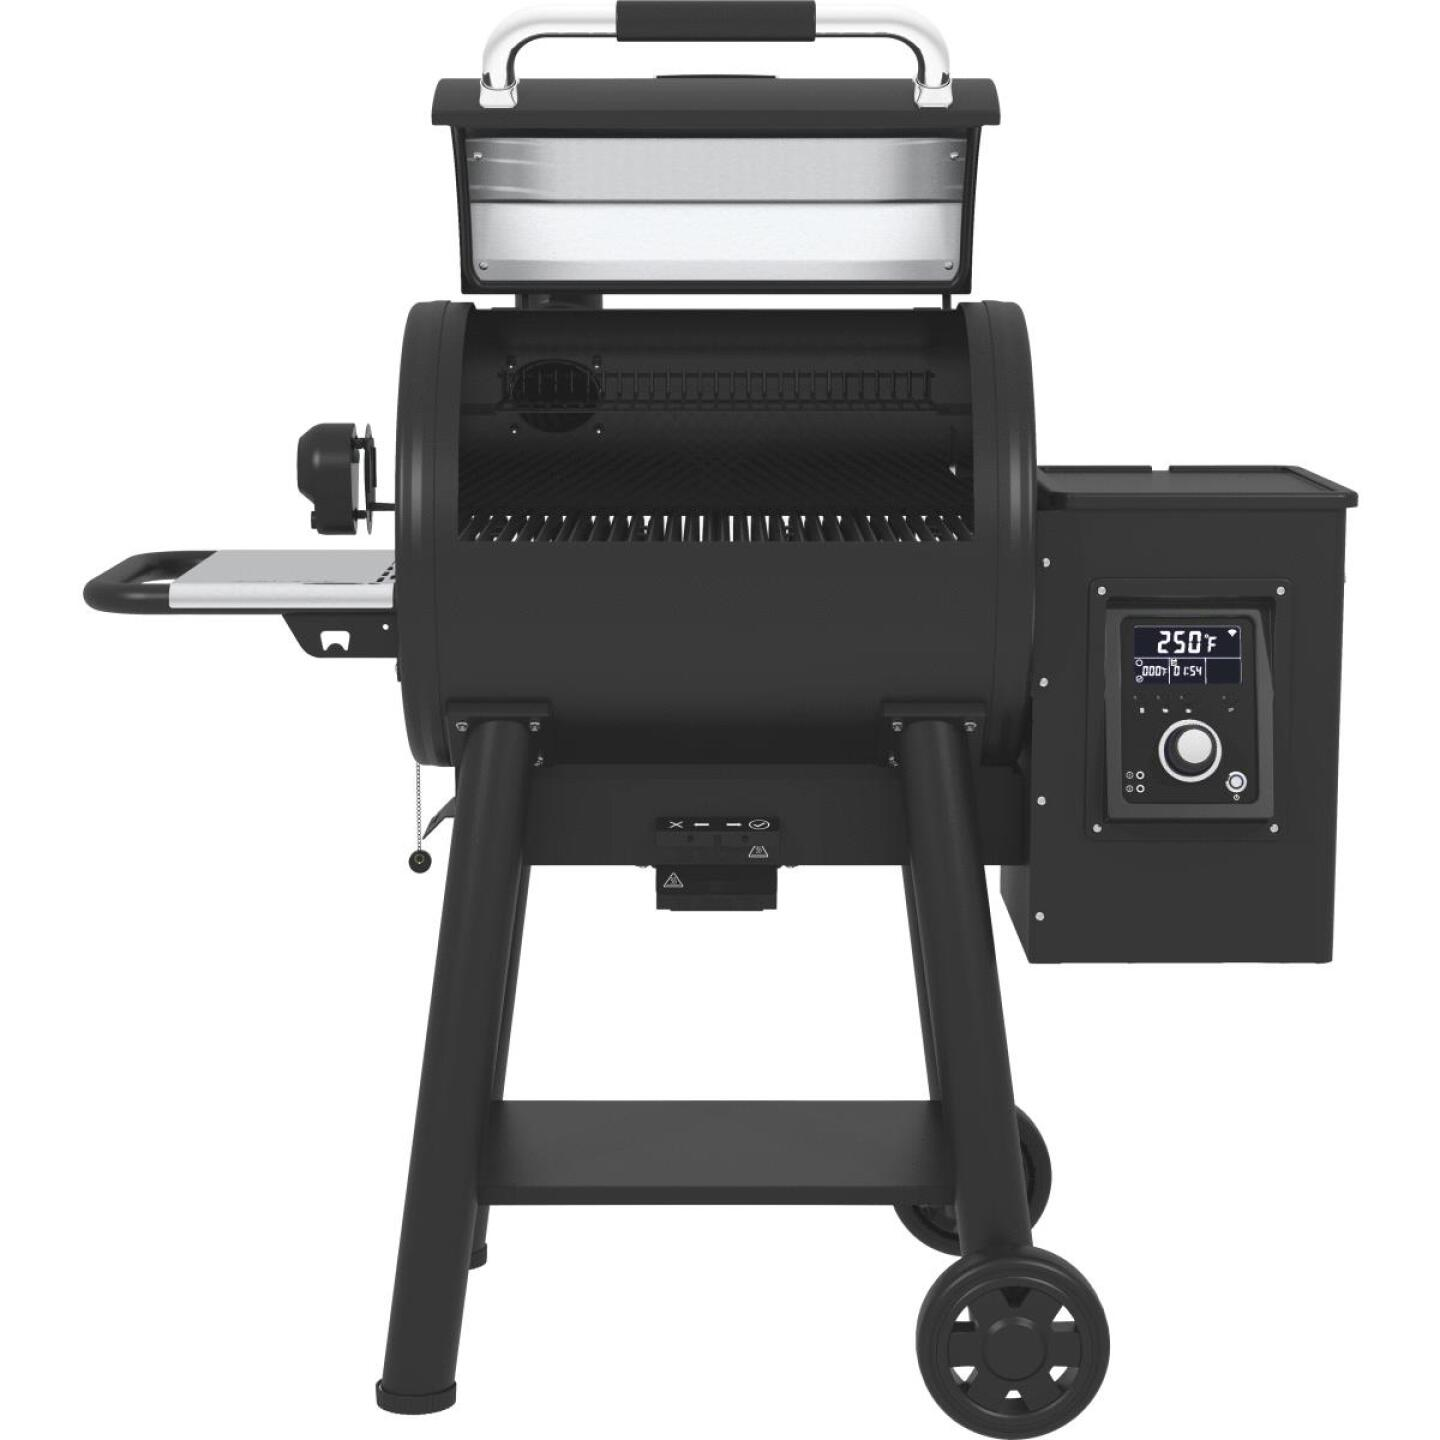 Broil King Regal Pellet 400 Black 690 Sq. In. Grill Image 4